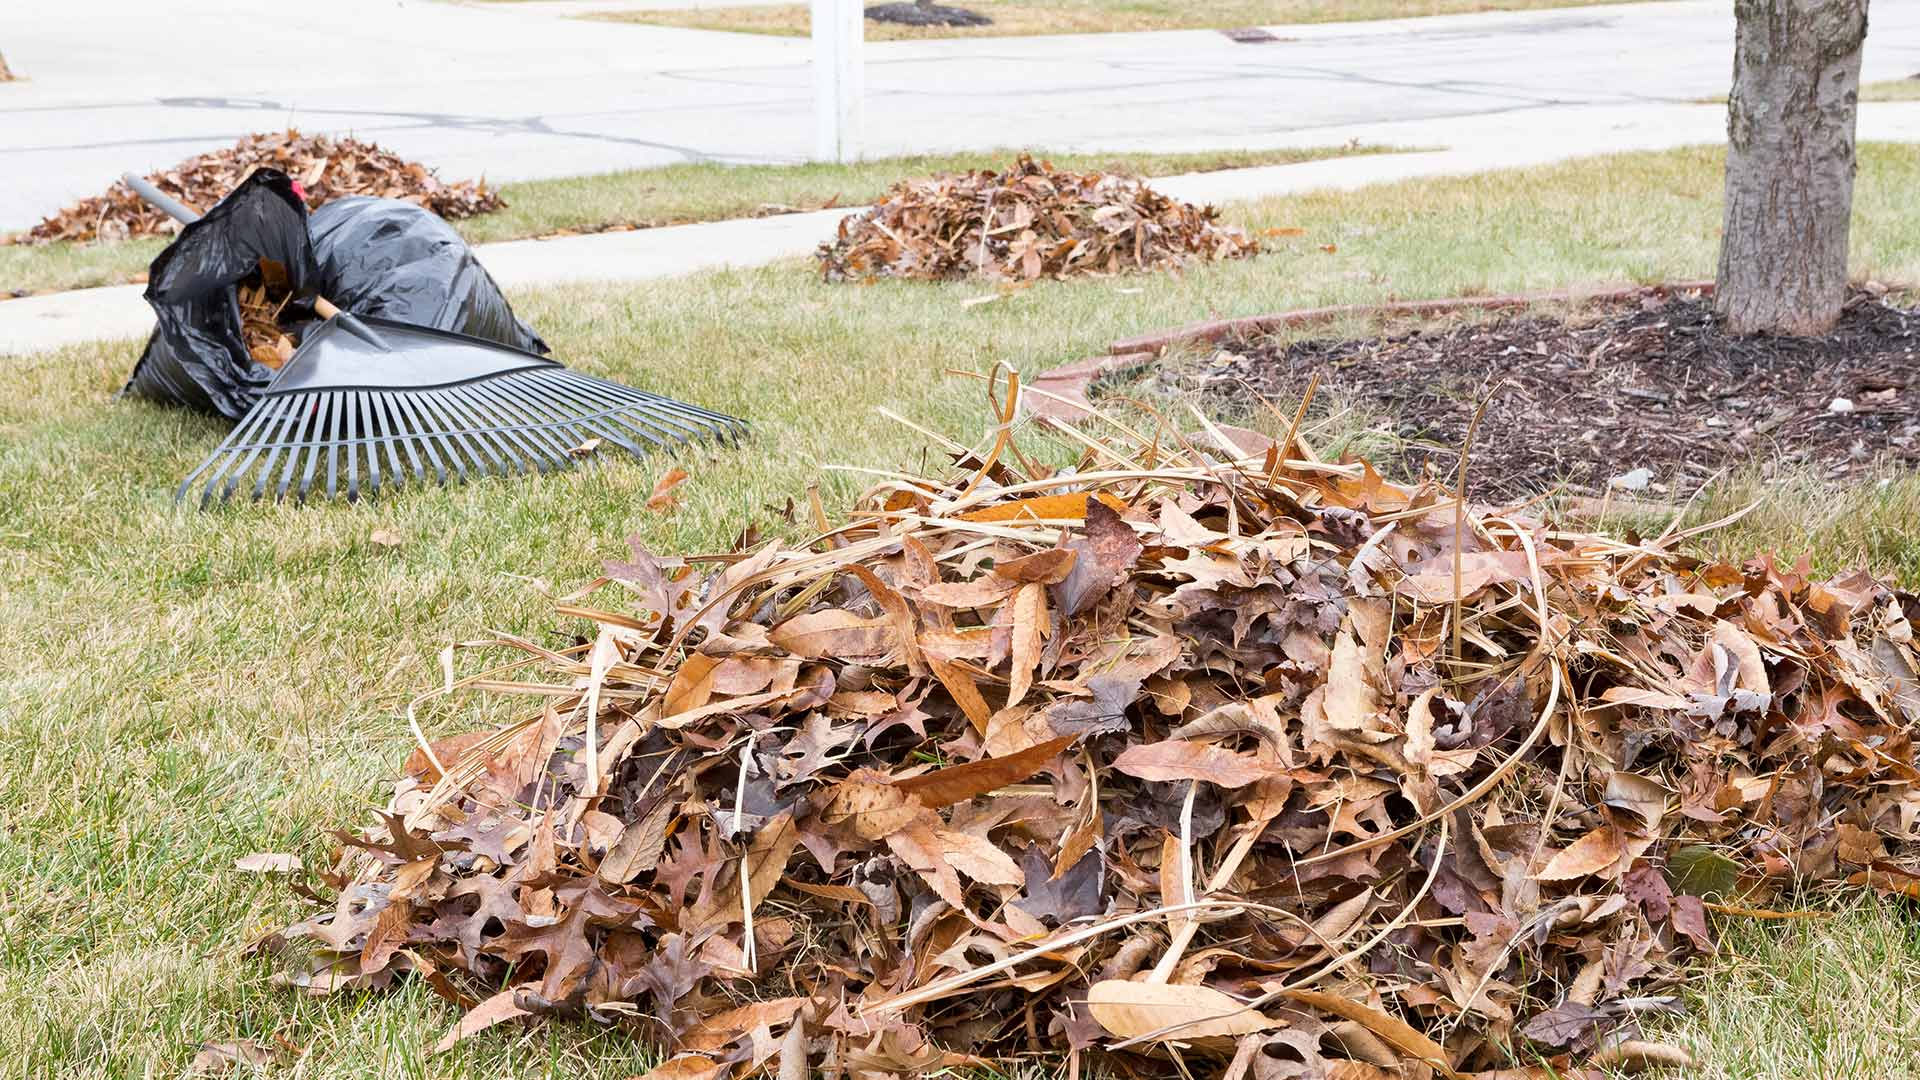 Piles of leaves being cleared and bagged for disposal in Grand Rapids, MI.